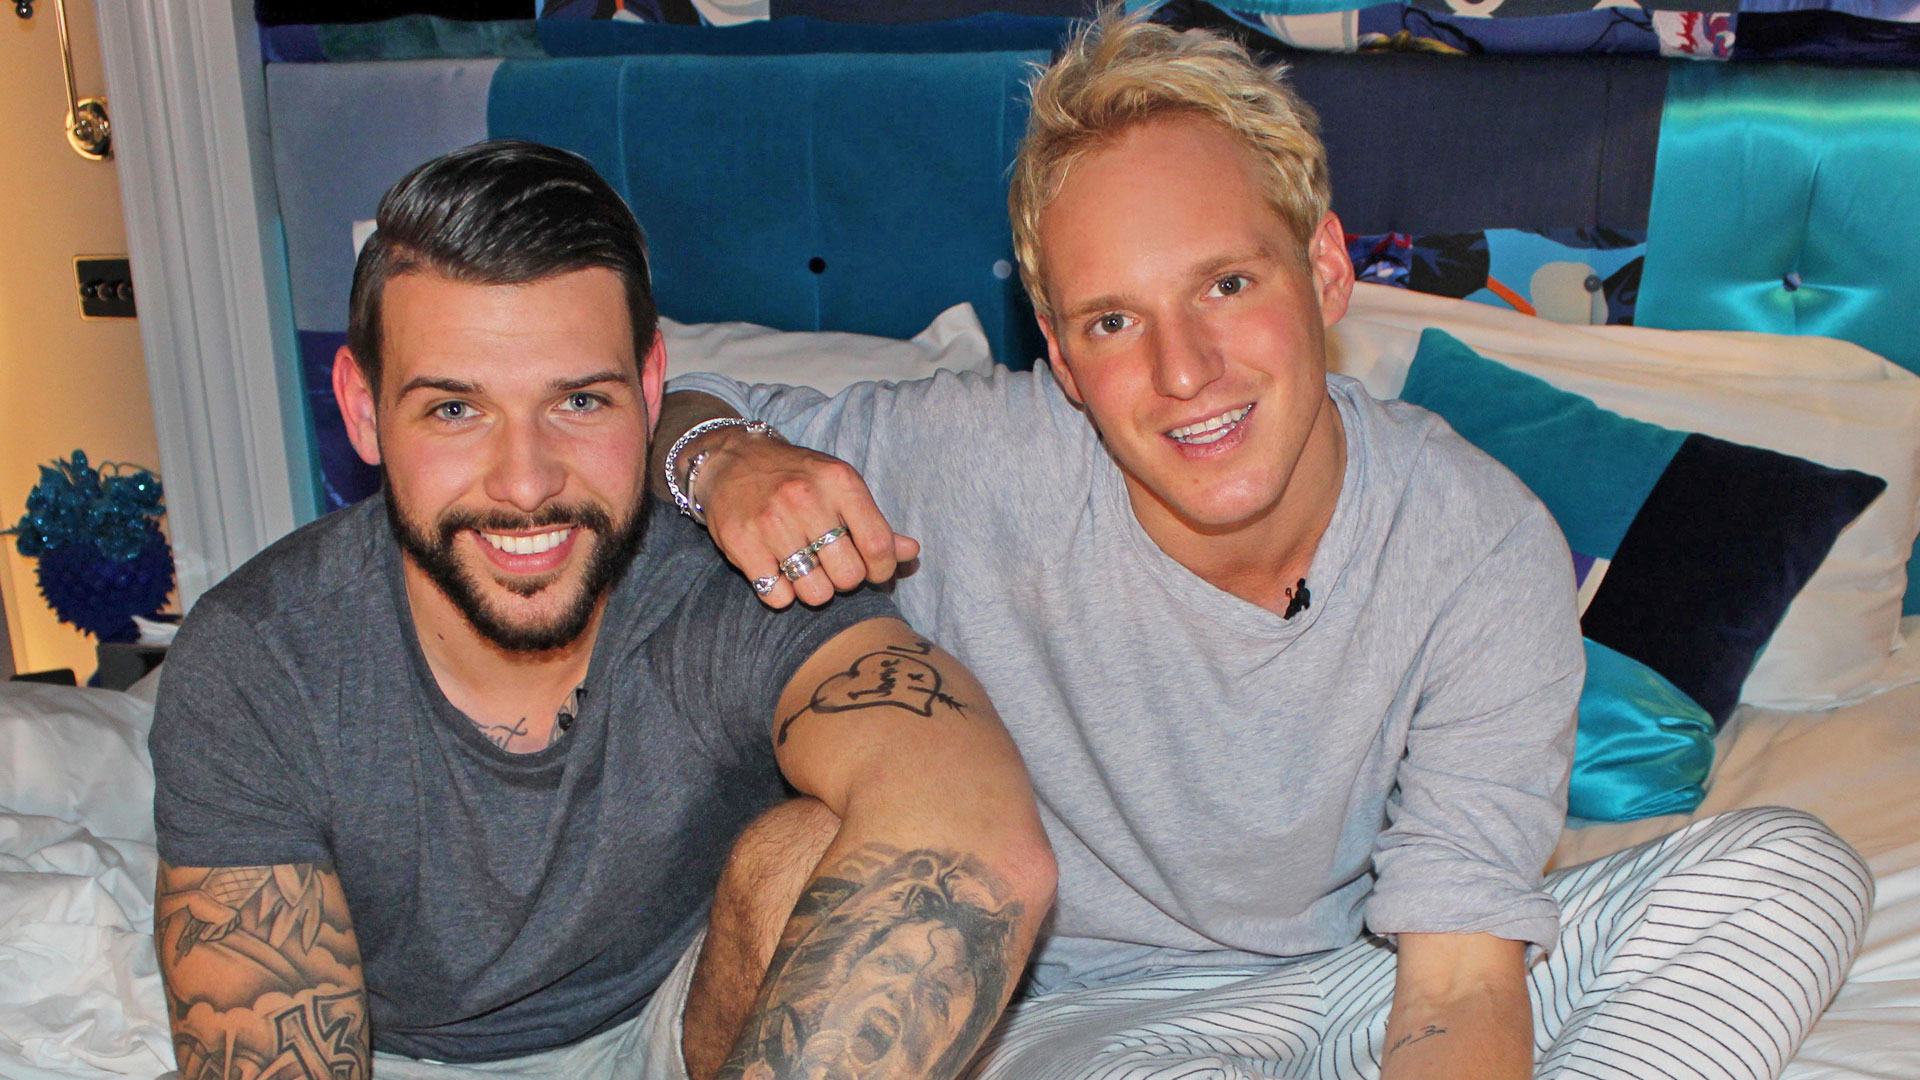 Jay and jamie Laing